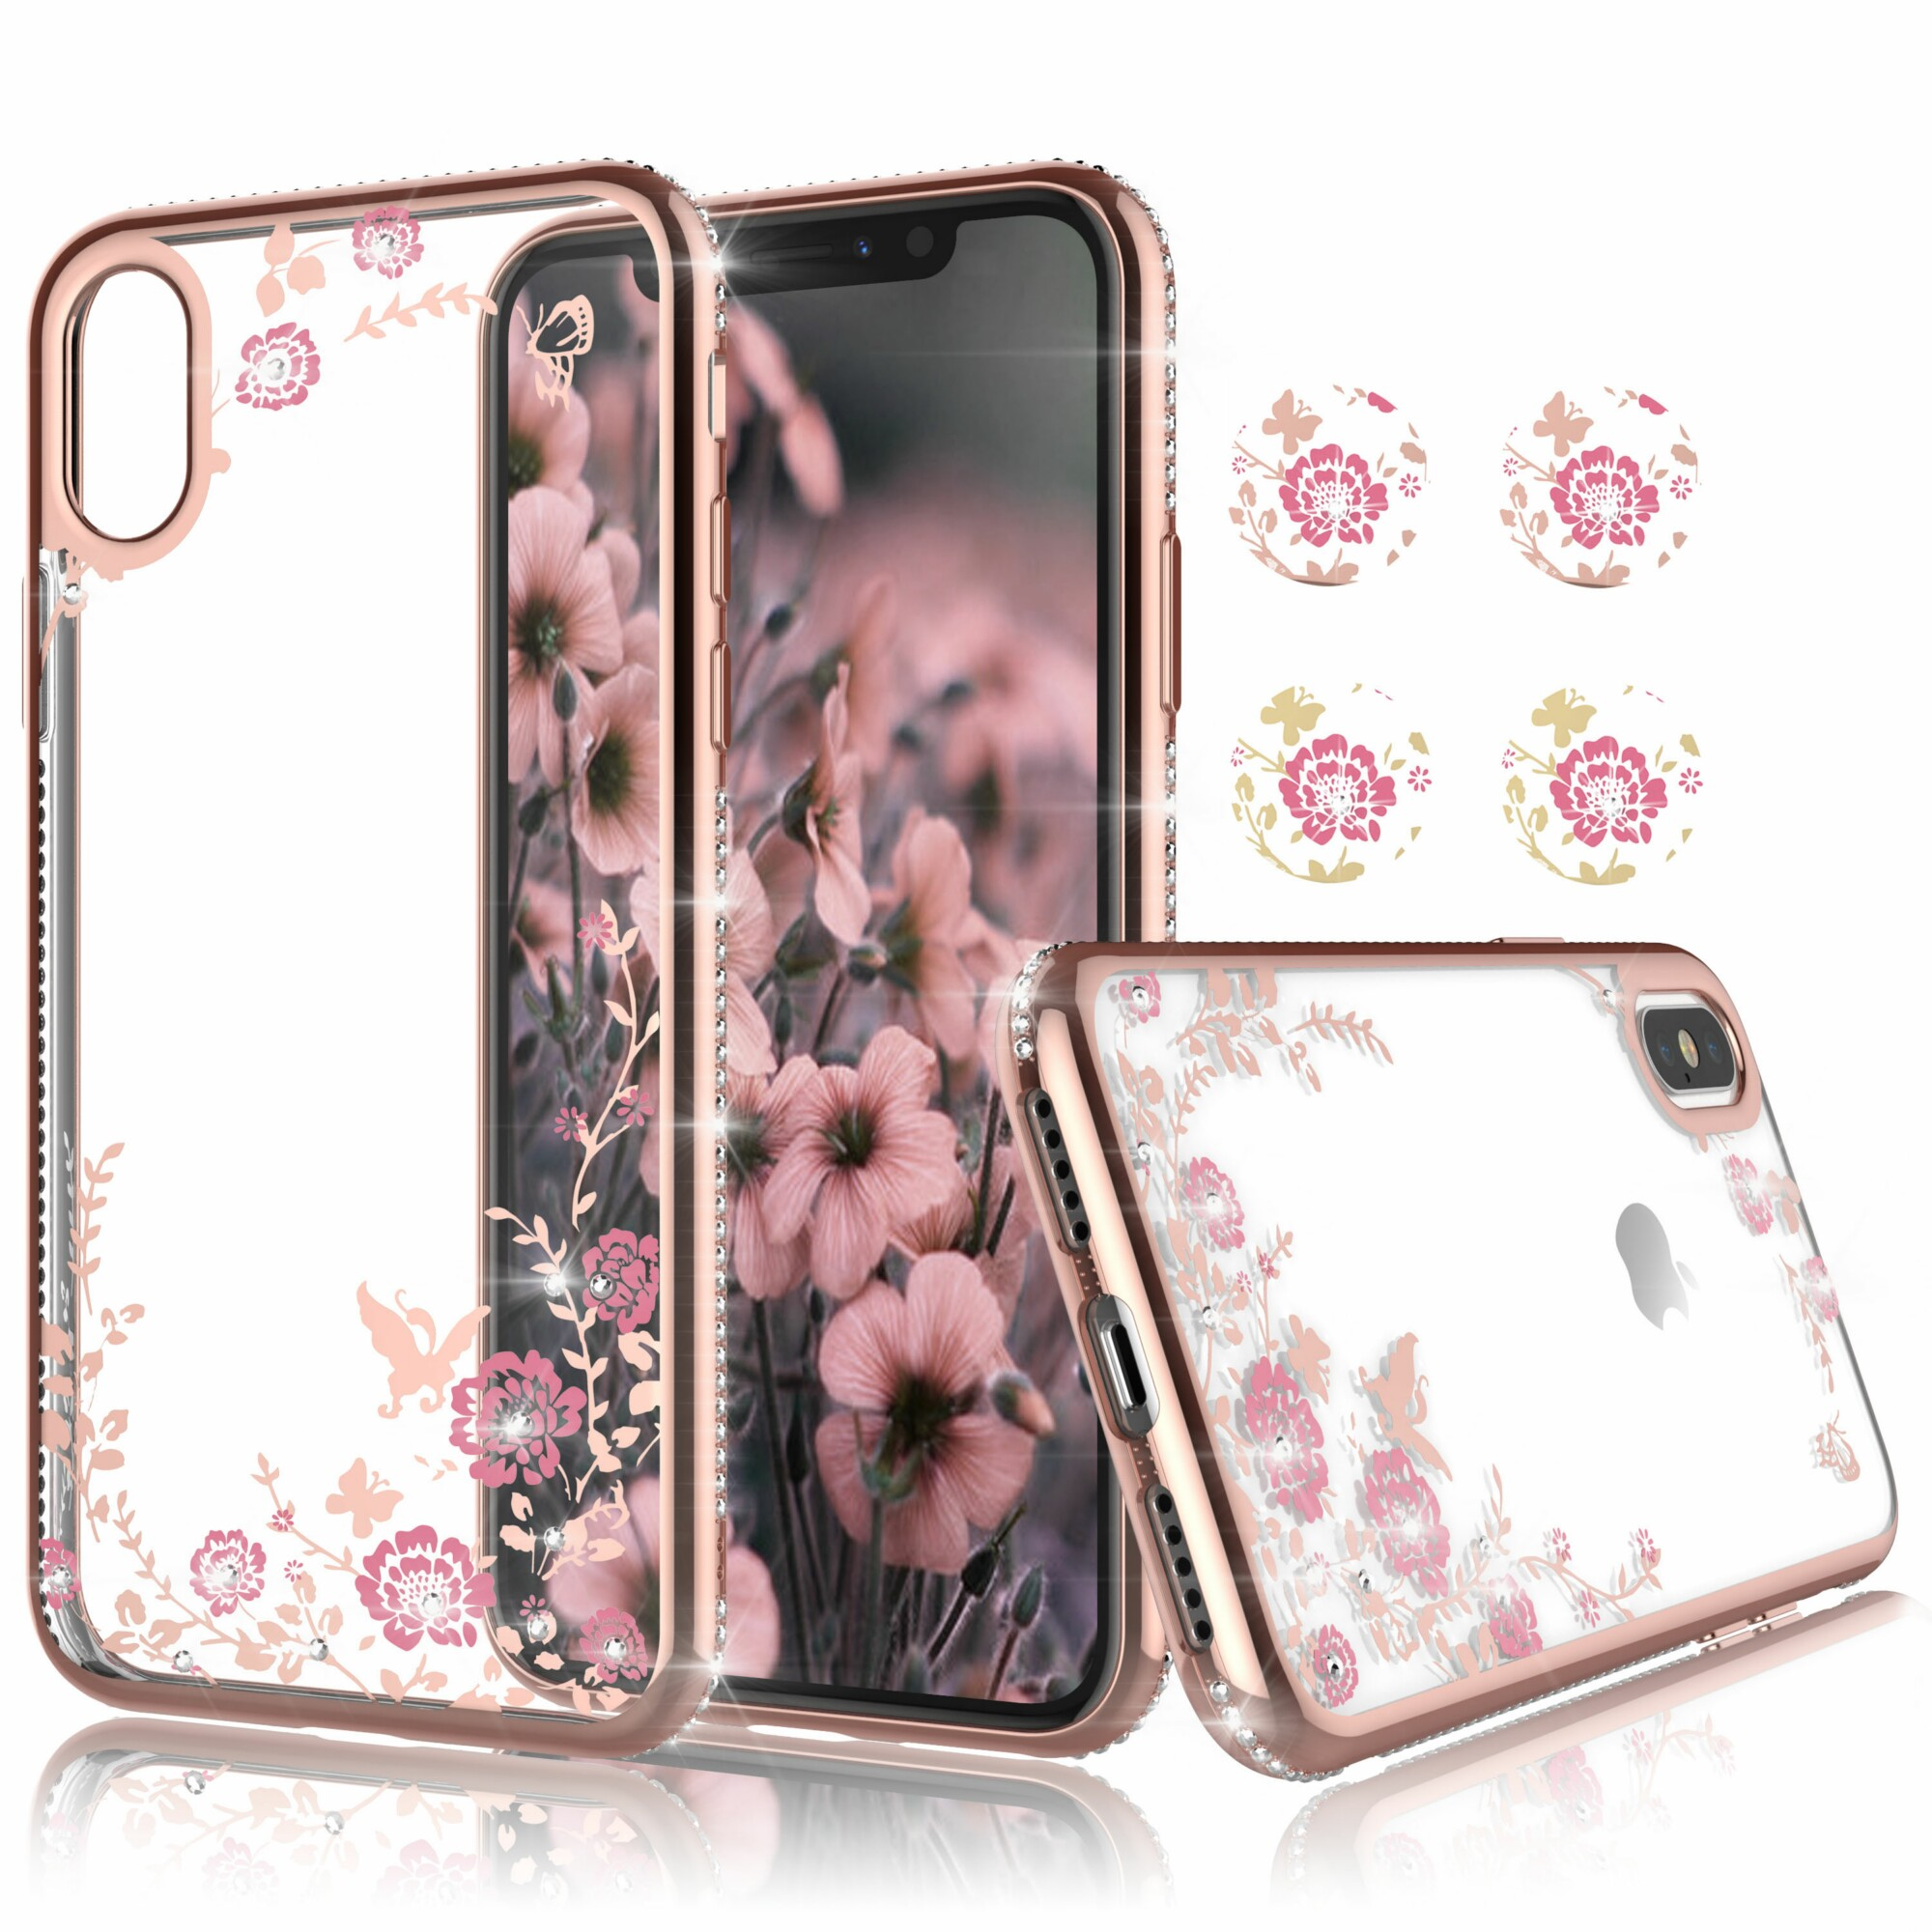 Njjex Phone Case Cover For iPhone Xs Max / iPhone XR / iPhone XS / iPhone X, Njjex Clear Flower Floral Design Shock Absorption Bling Glitter Sparkle Hard Slim Case TPU Bumper Protective Cover